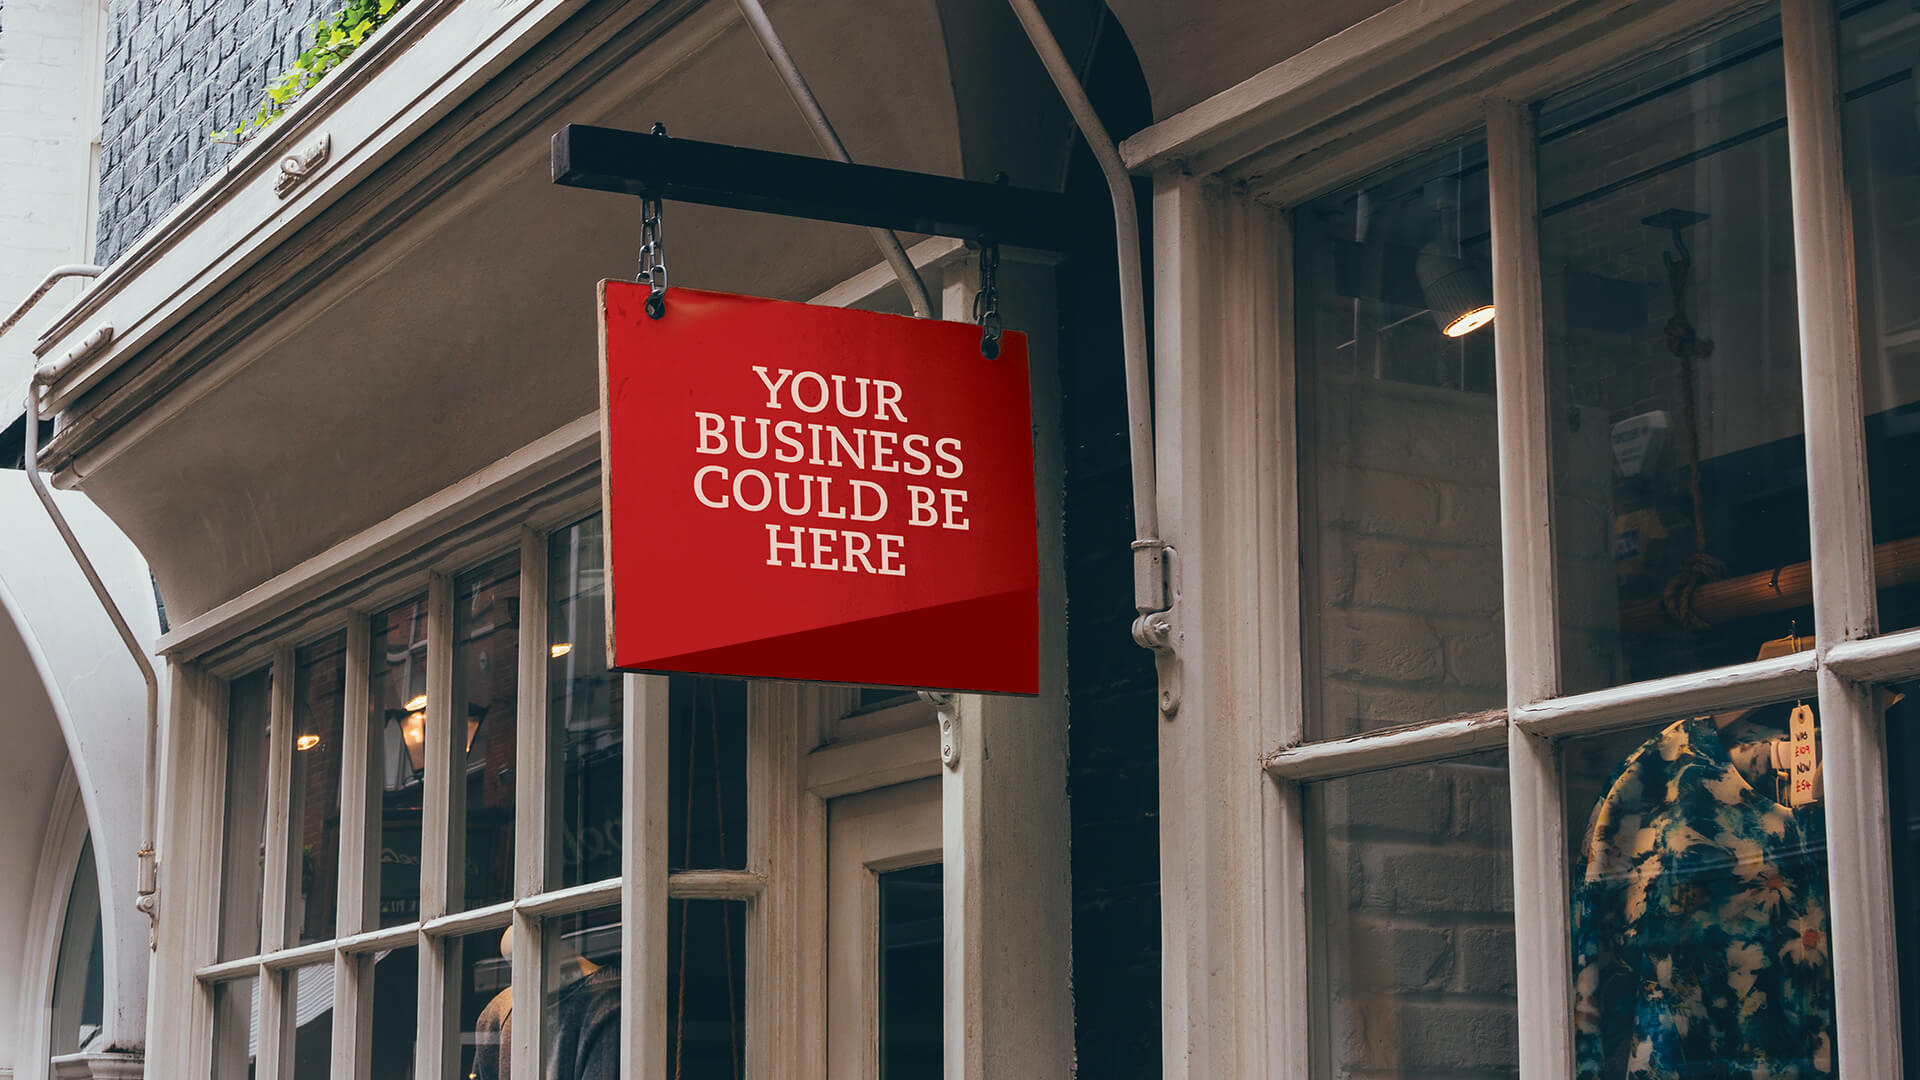 Sign on storefront